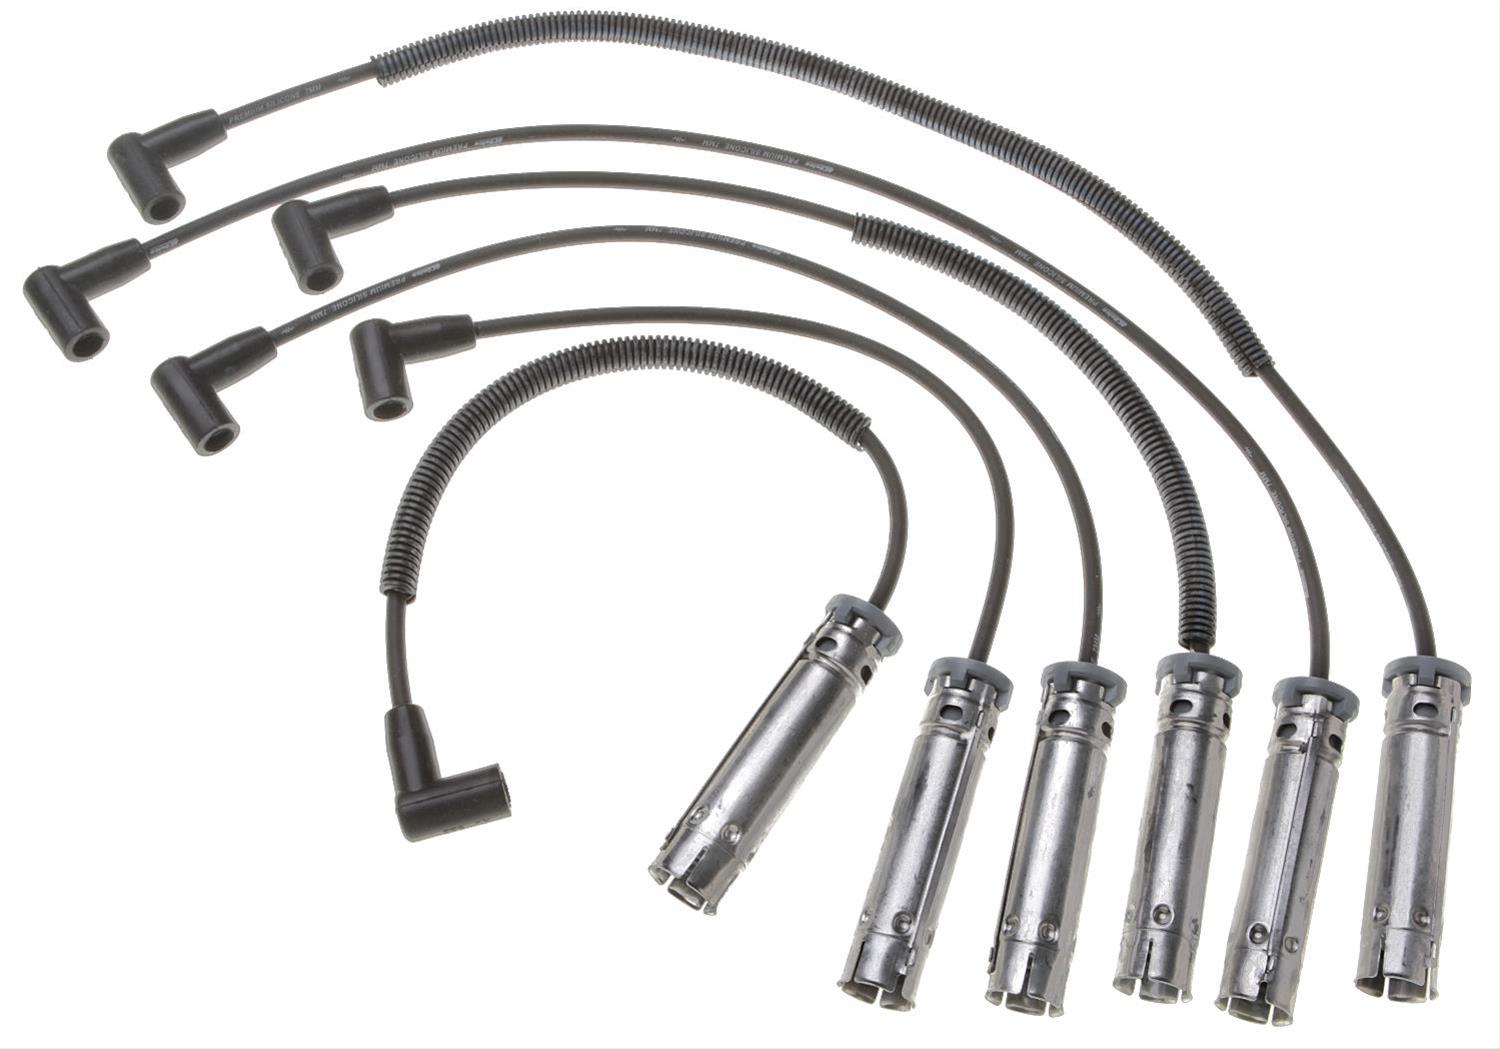 1996 PLYMOUTH VOYAGER ACDelco Spark Plug Wire Sets